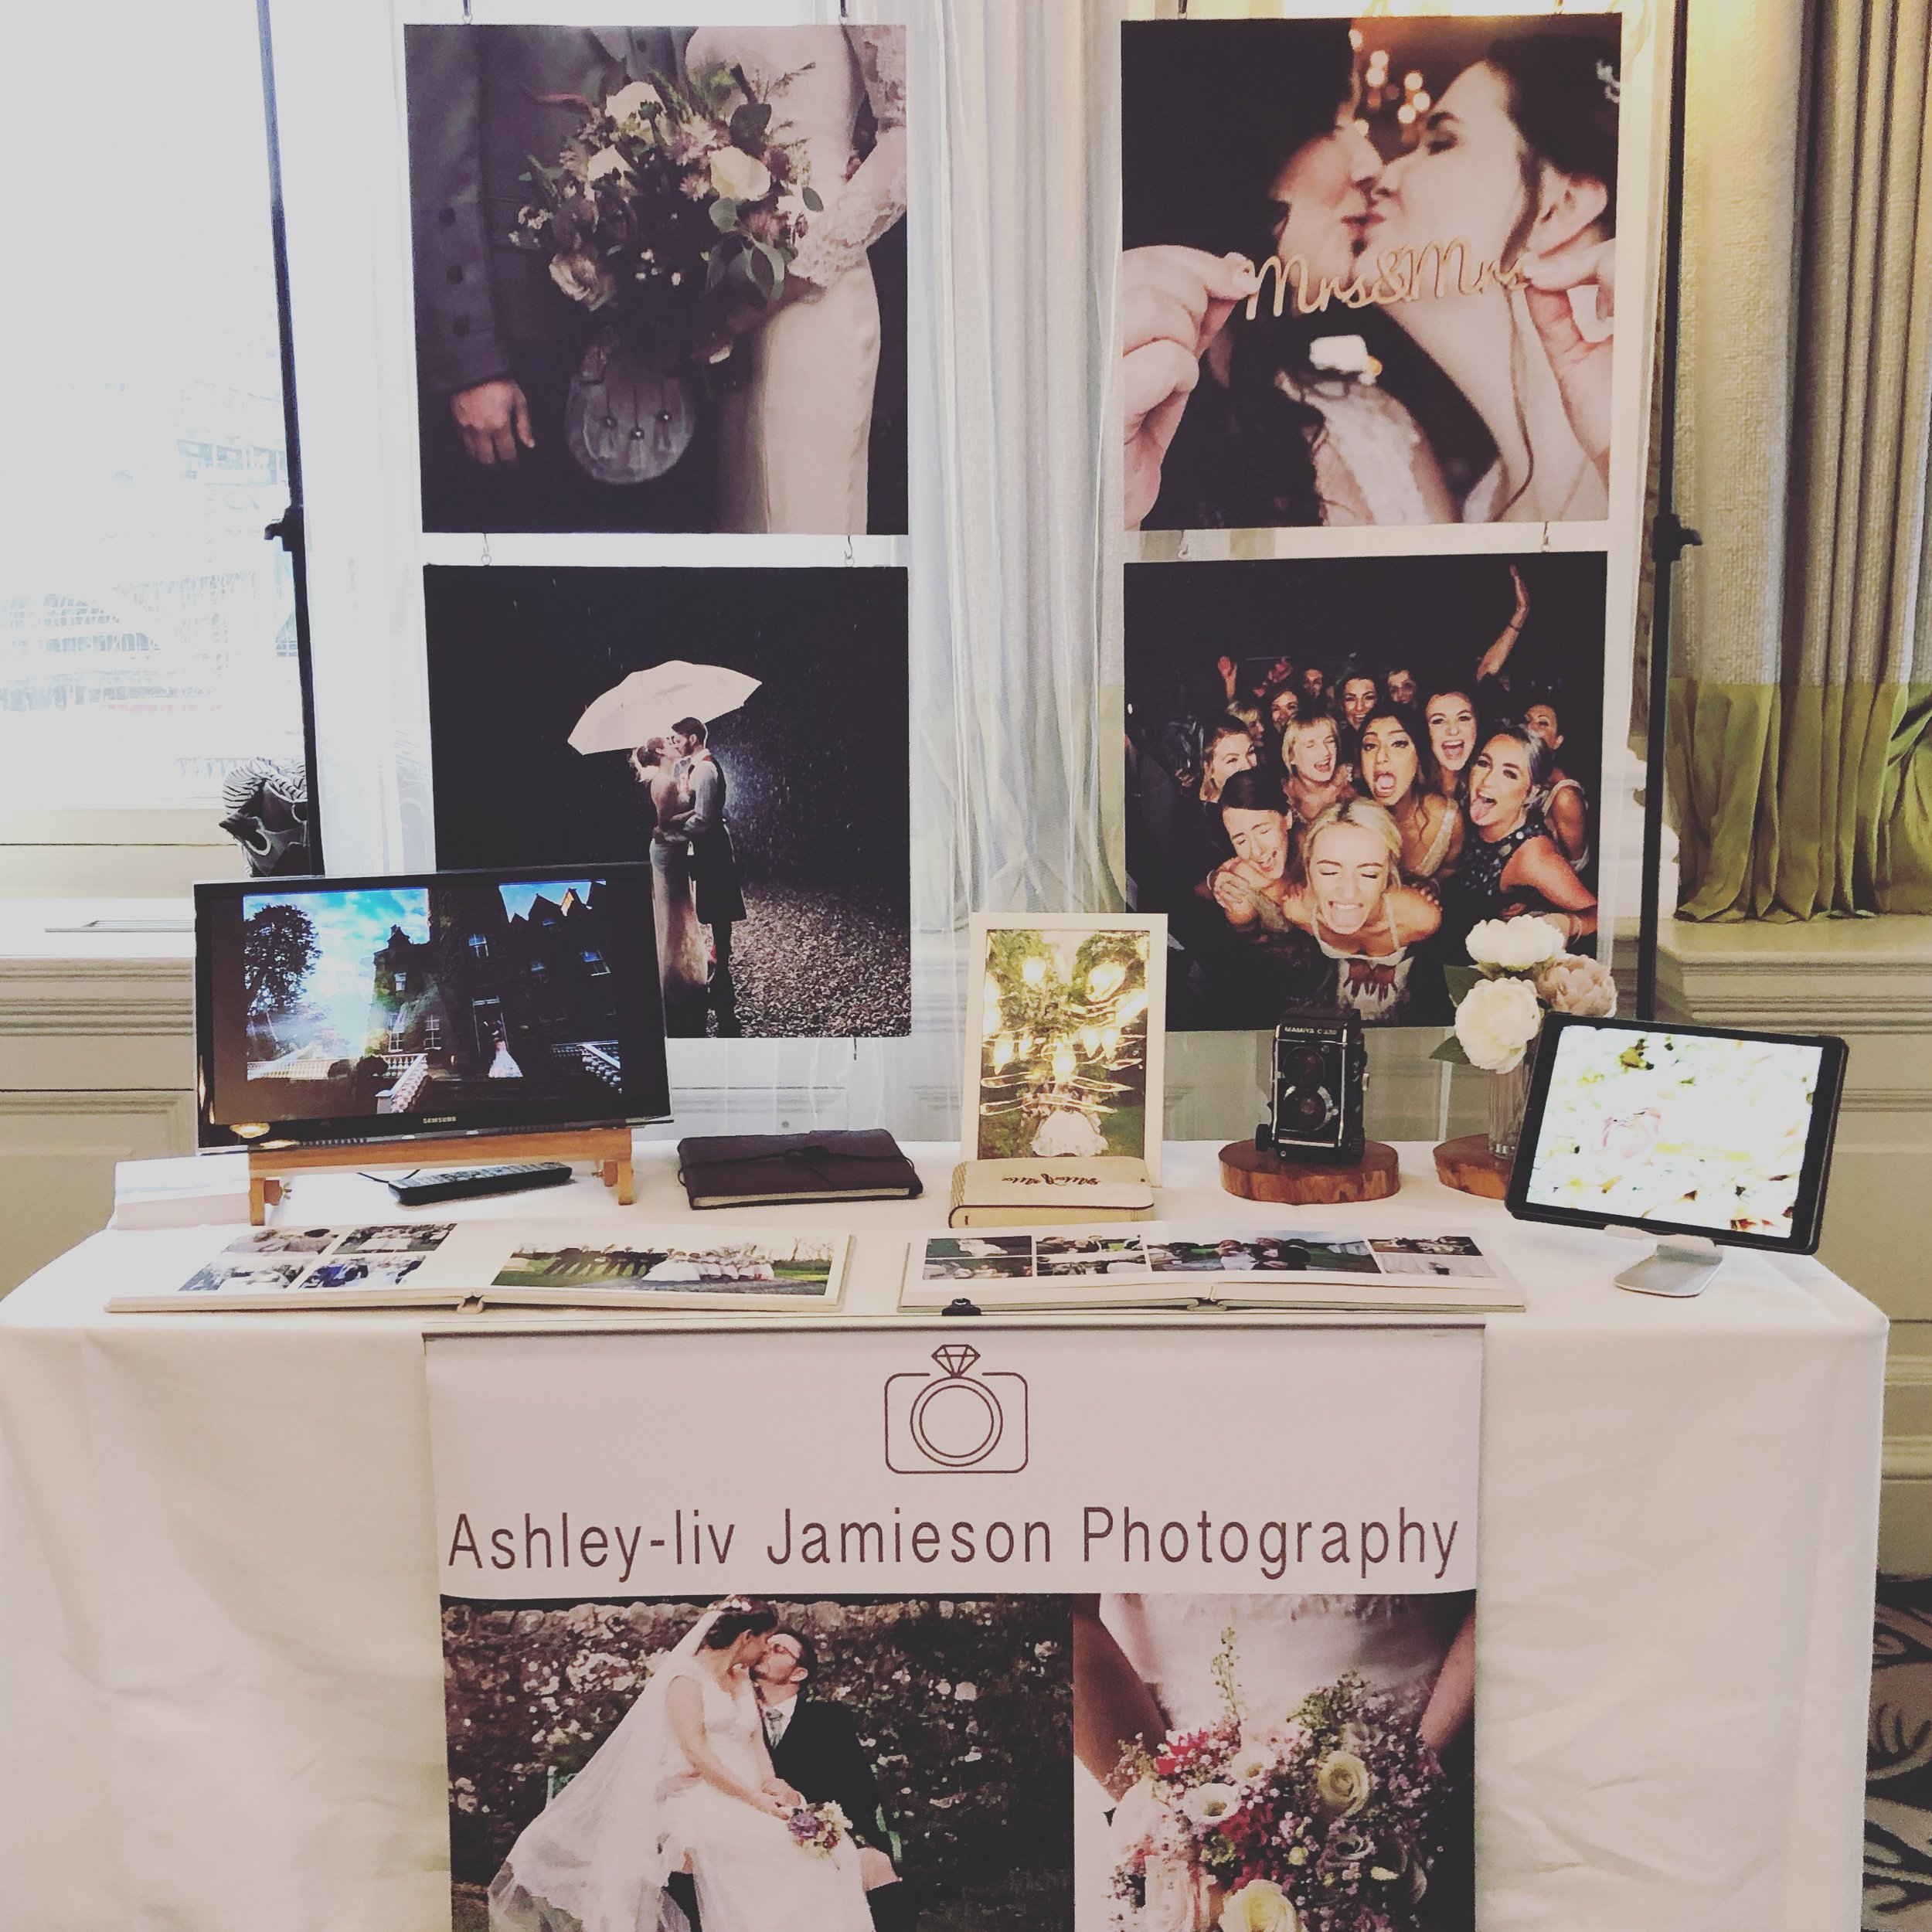 The luxury wedding fair at the balmoral.